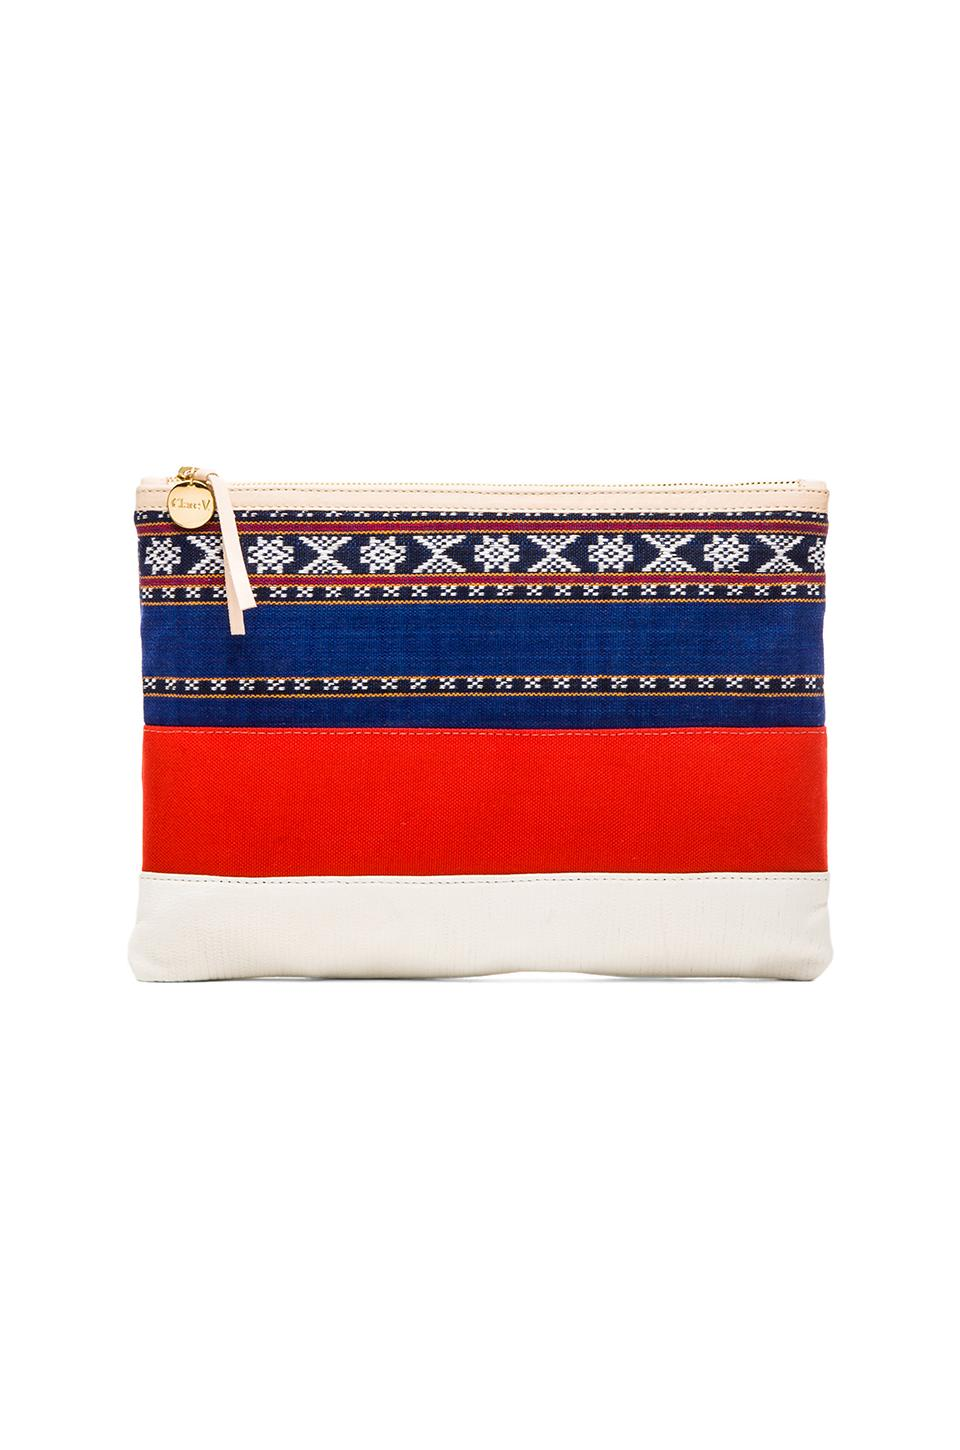 Clare V. Flat Clutch in Mexican Print